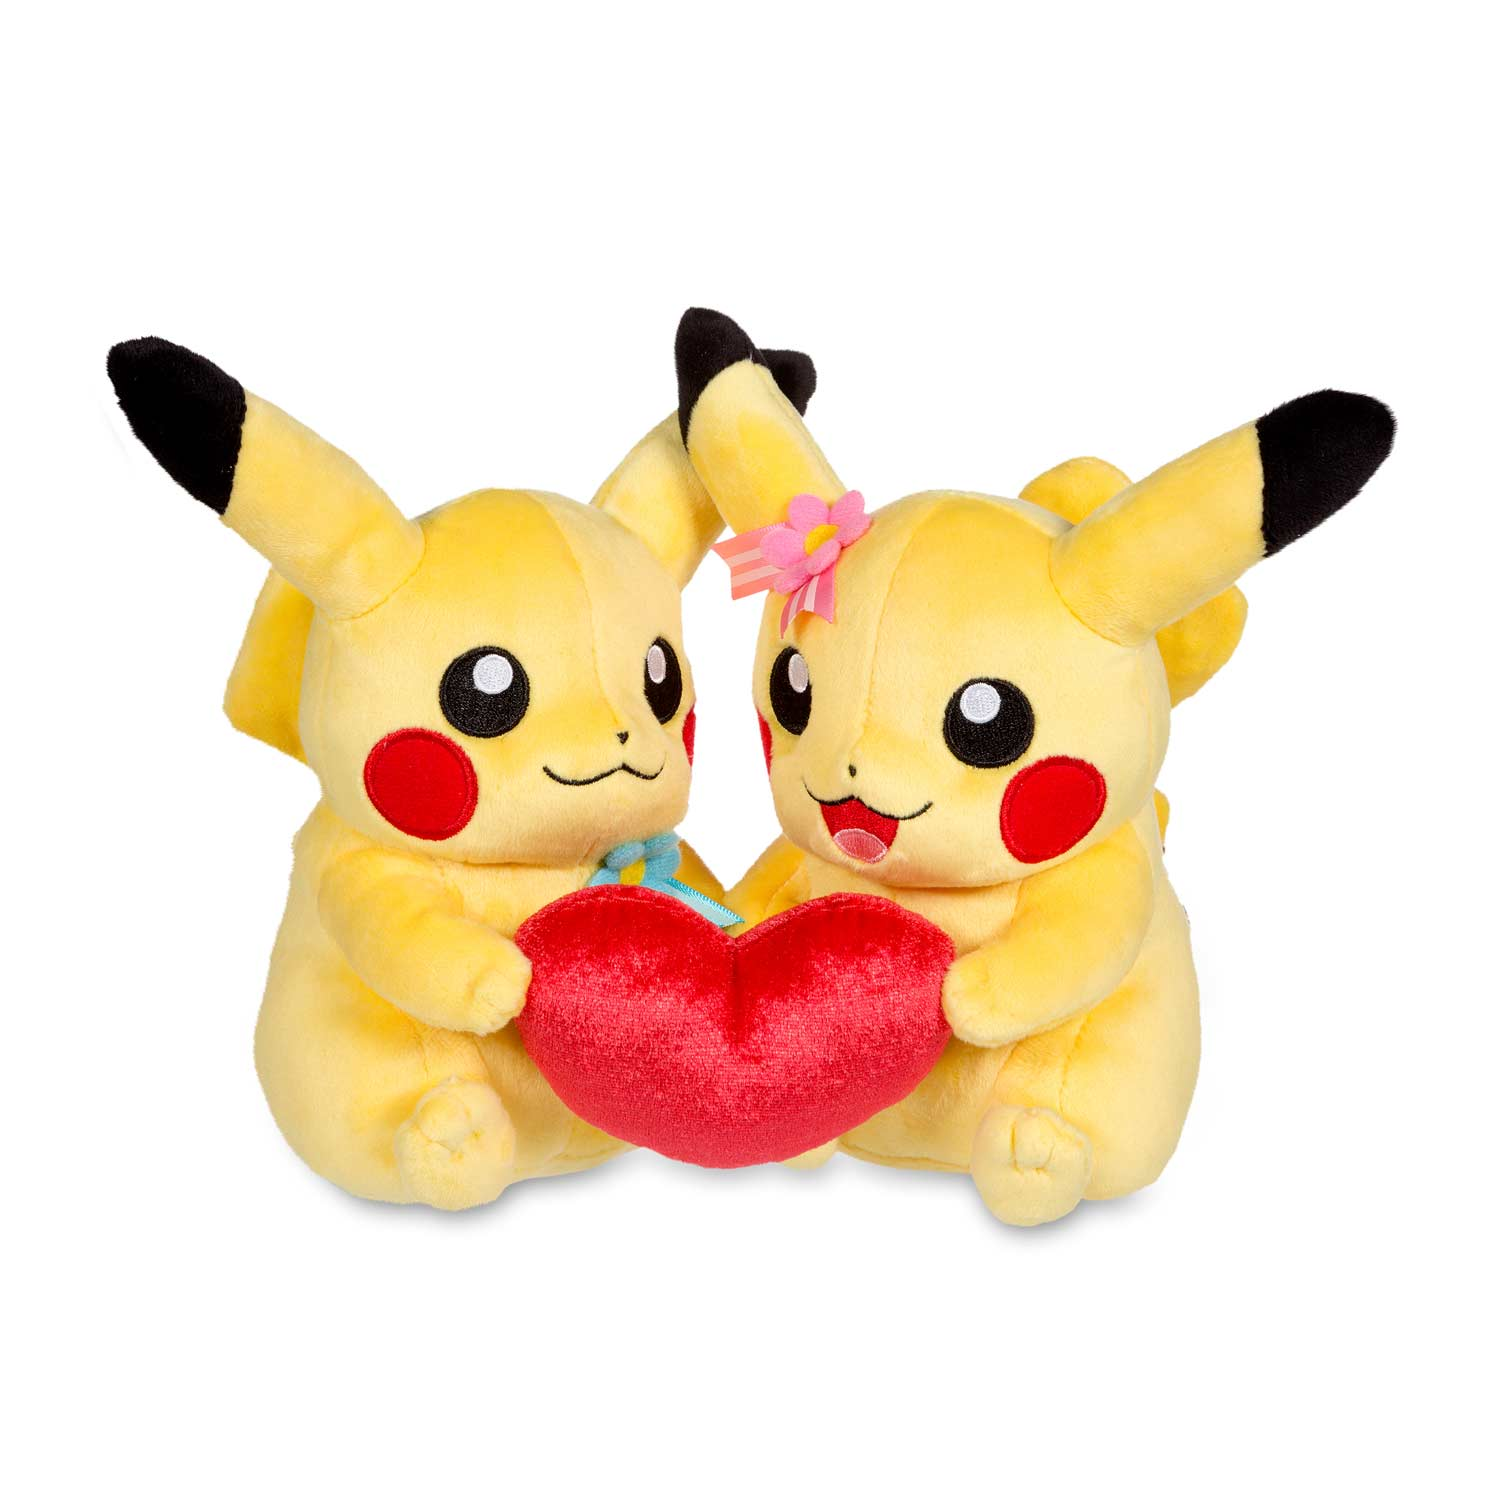 Perfect Pair Pikachu Pok Plush Pikachu Heart Plush Toy